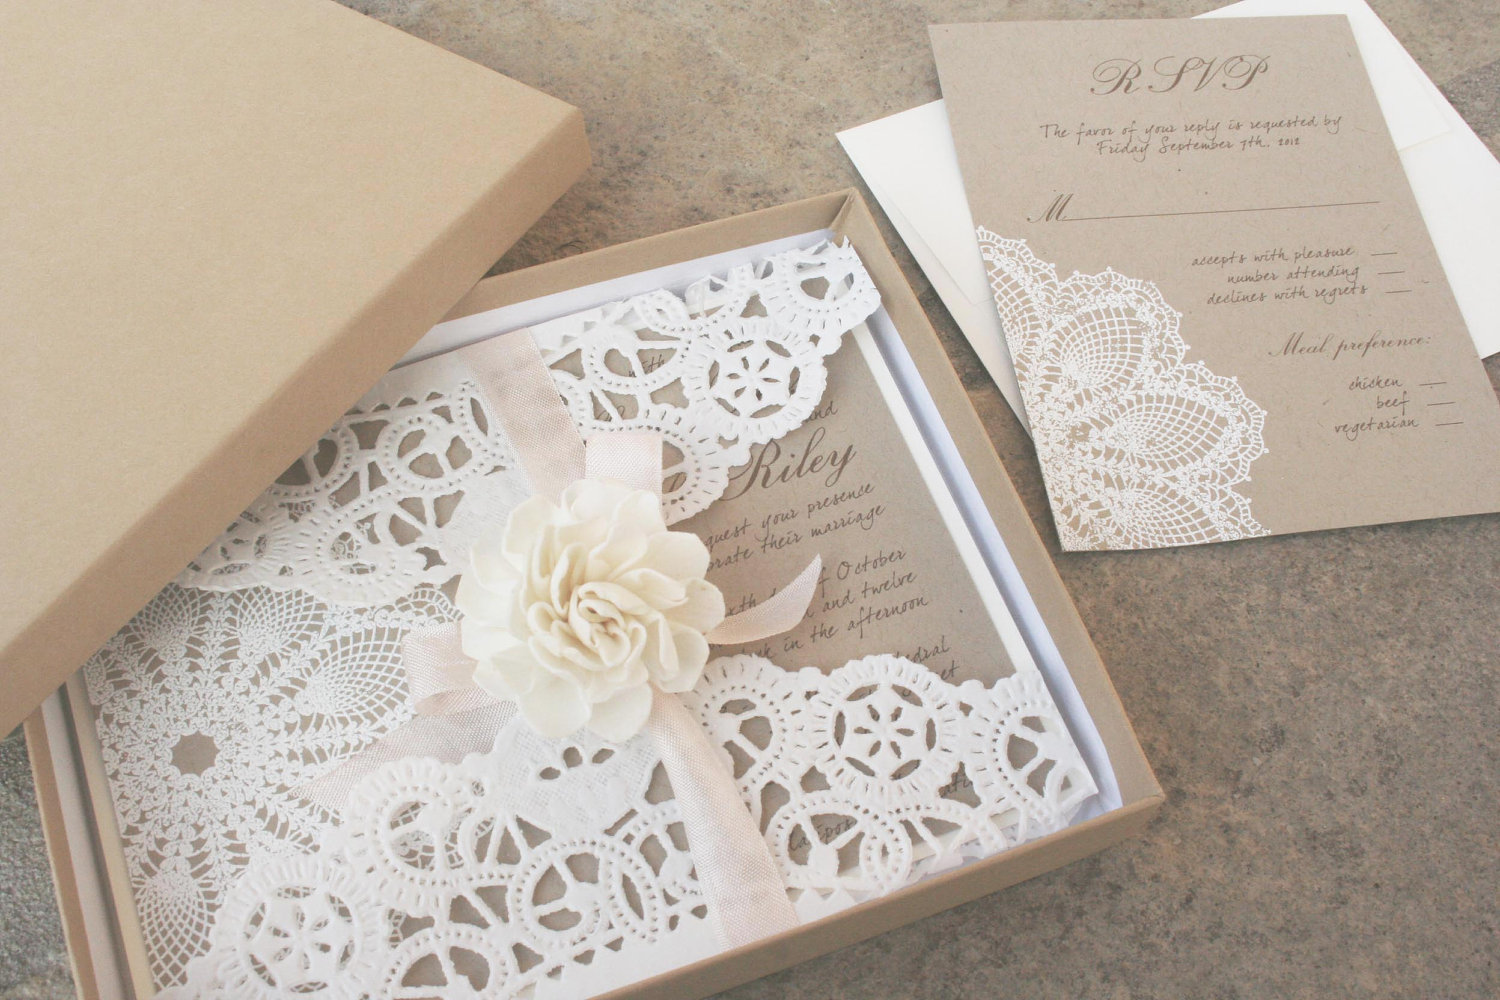 Wedding Invitation Picture: Classic Wedding Invitations: Lace Wedding Invitations